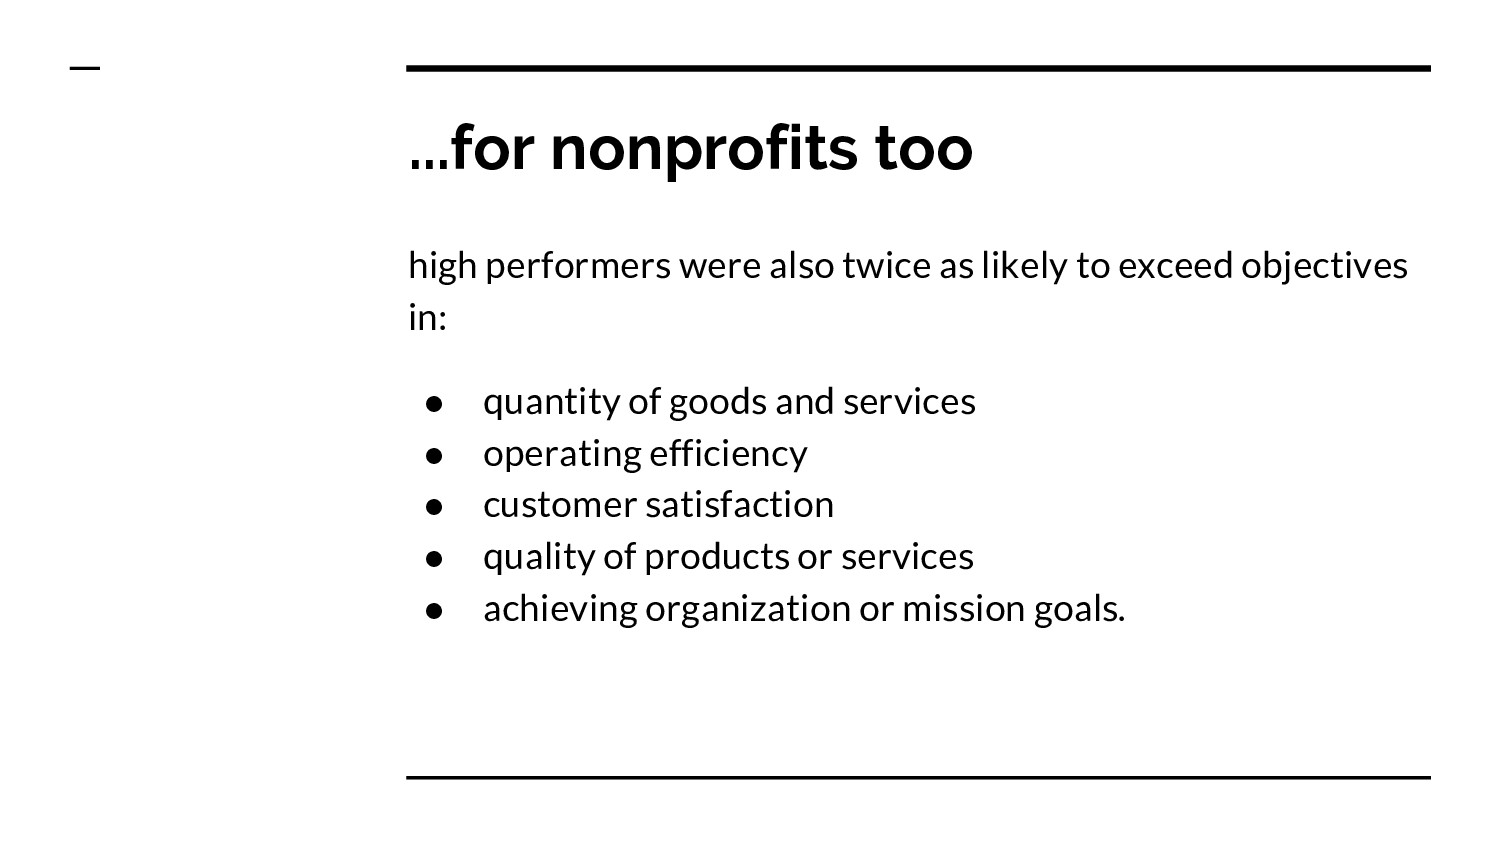 ...for nonprofits too high performers were also...